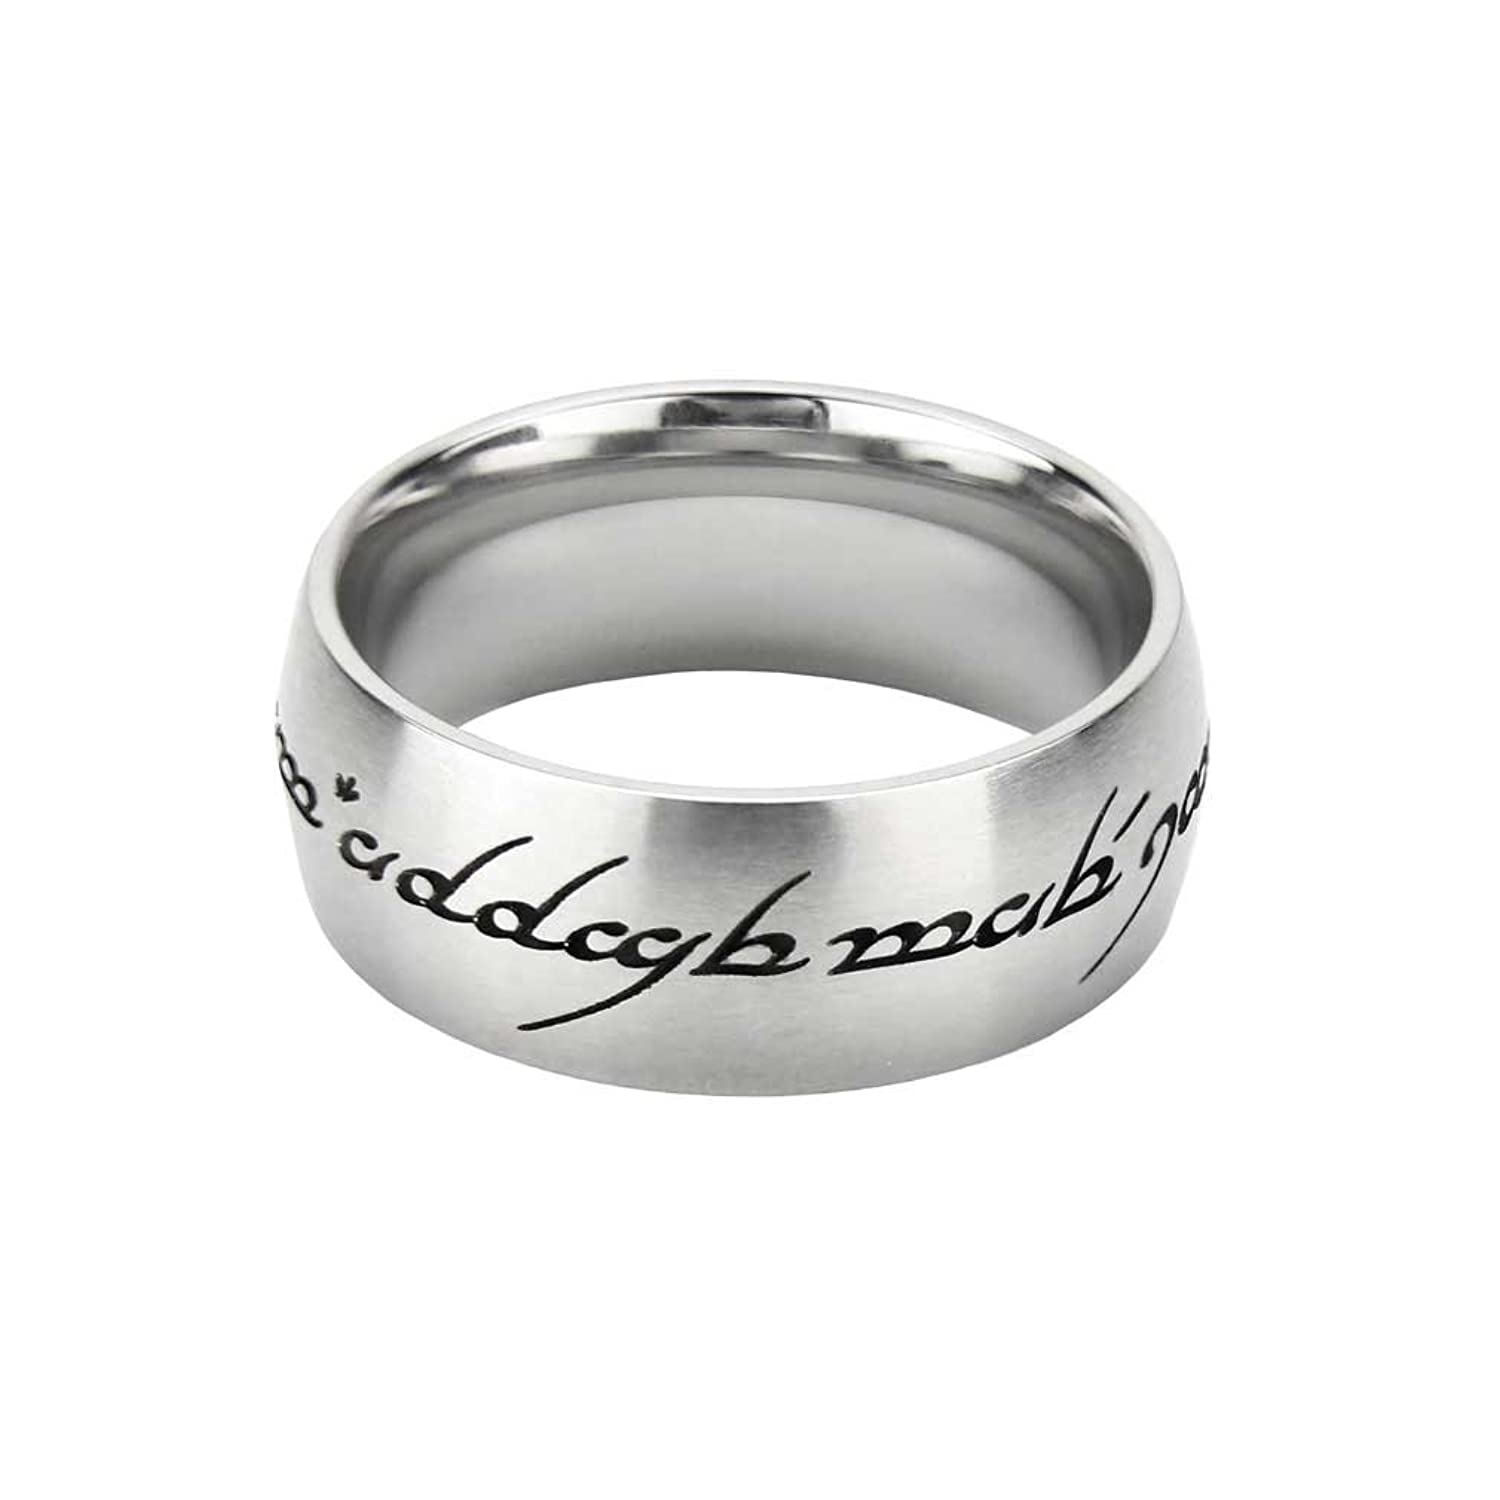 available onering elven the ring one weta now everything wedding blog rings elvenesse from